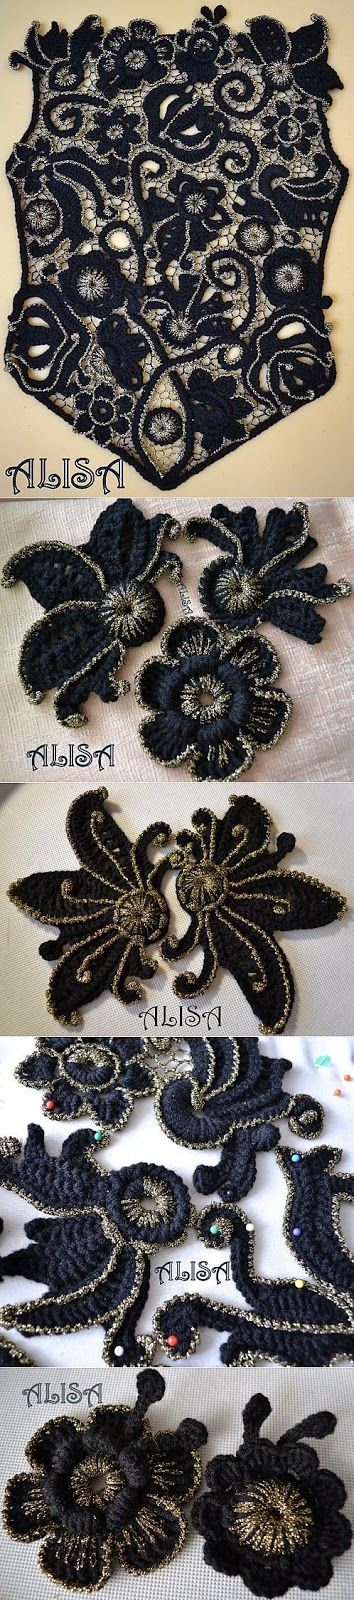 Letras e Artes da Lalá: Crochê Irlandês/Irish Lace (by pinterest, sem receitas) ...crochet inspiration ONLY...